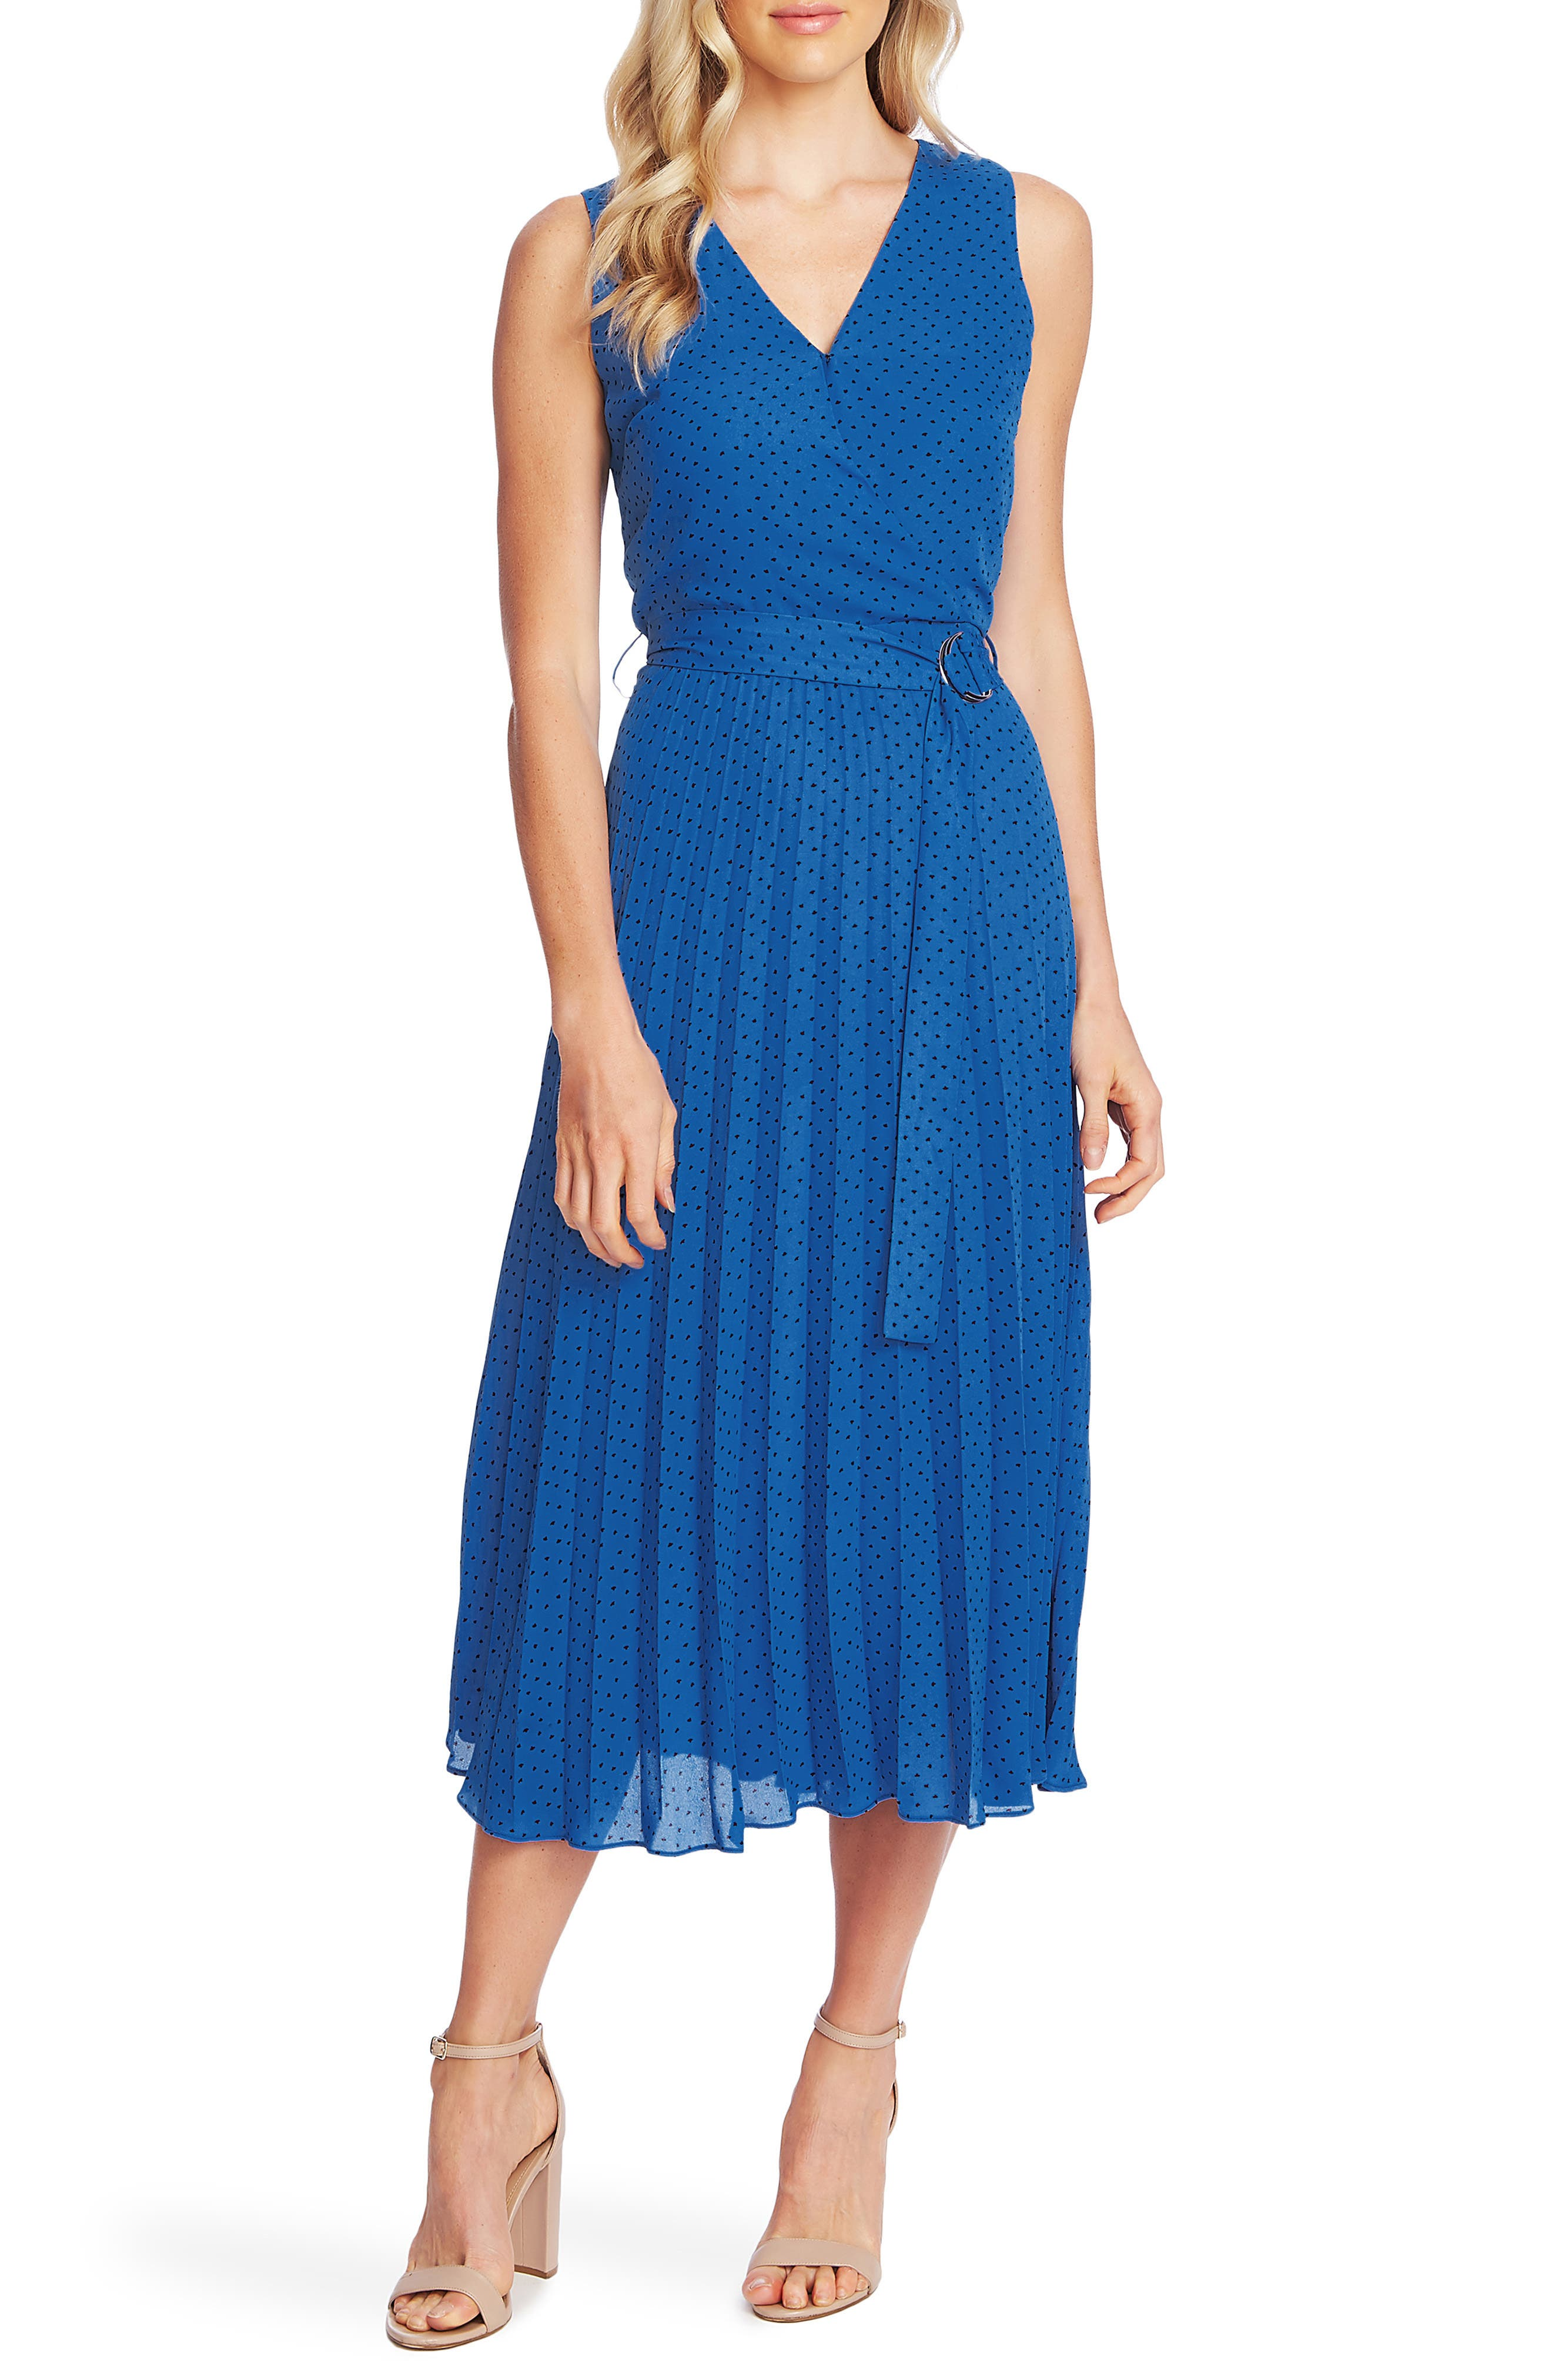 70s Prom, Formal, Evening, Party Dresses Womens Vince Camuto Ditsy Dot Sleeveless Pleated Midi Dress Size 12 - Blue $139.00 AT vintagedancer.com